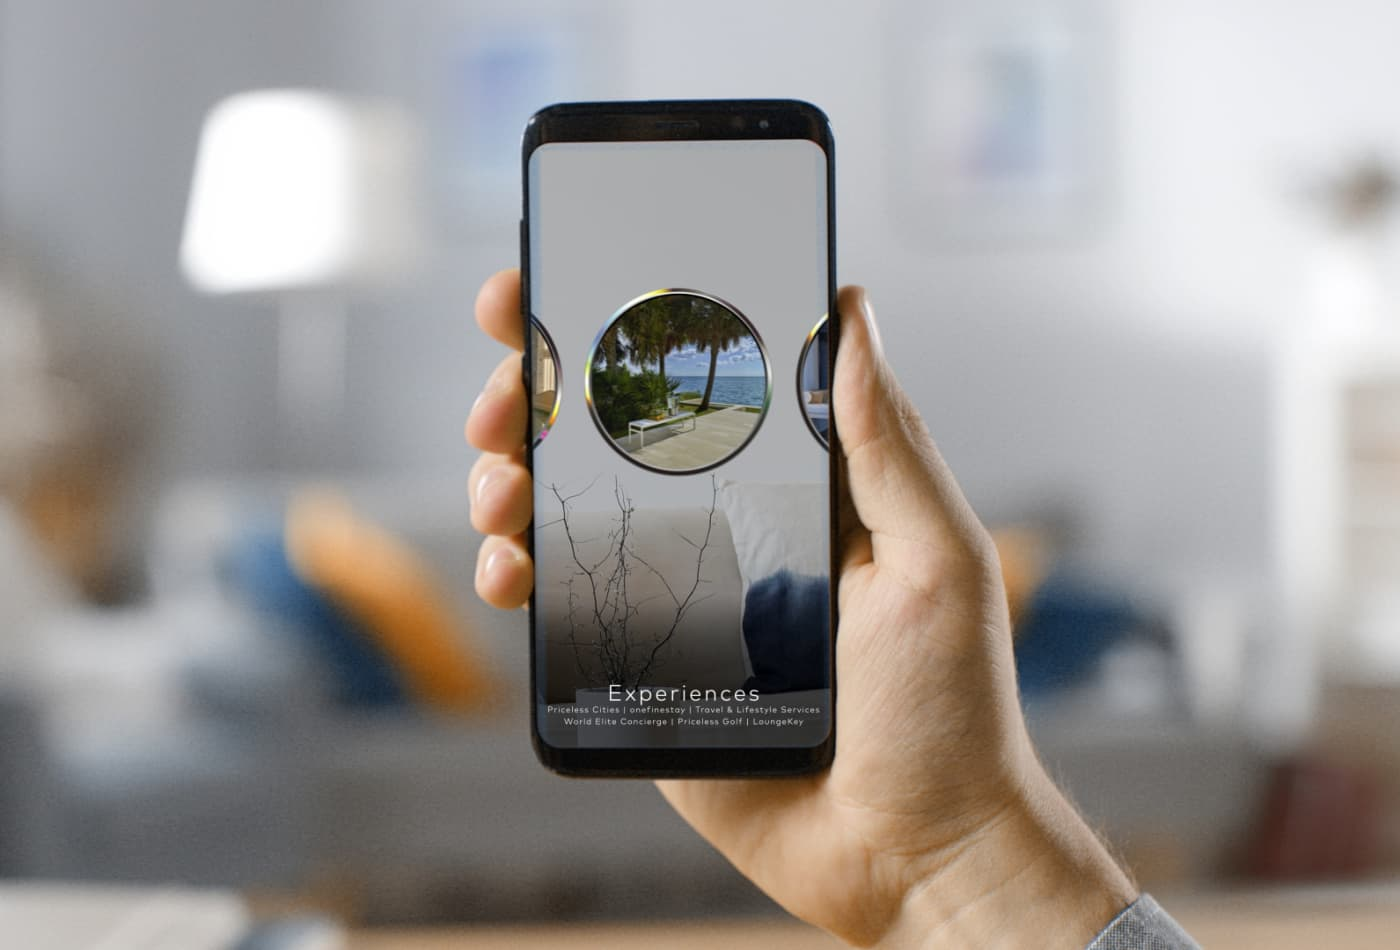 Mastercard launches augmented reality app that brings card benefits to life